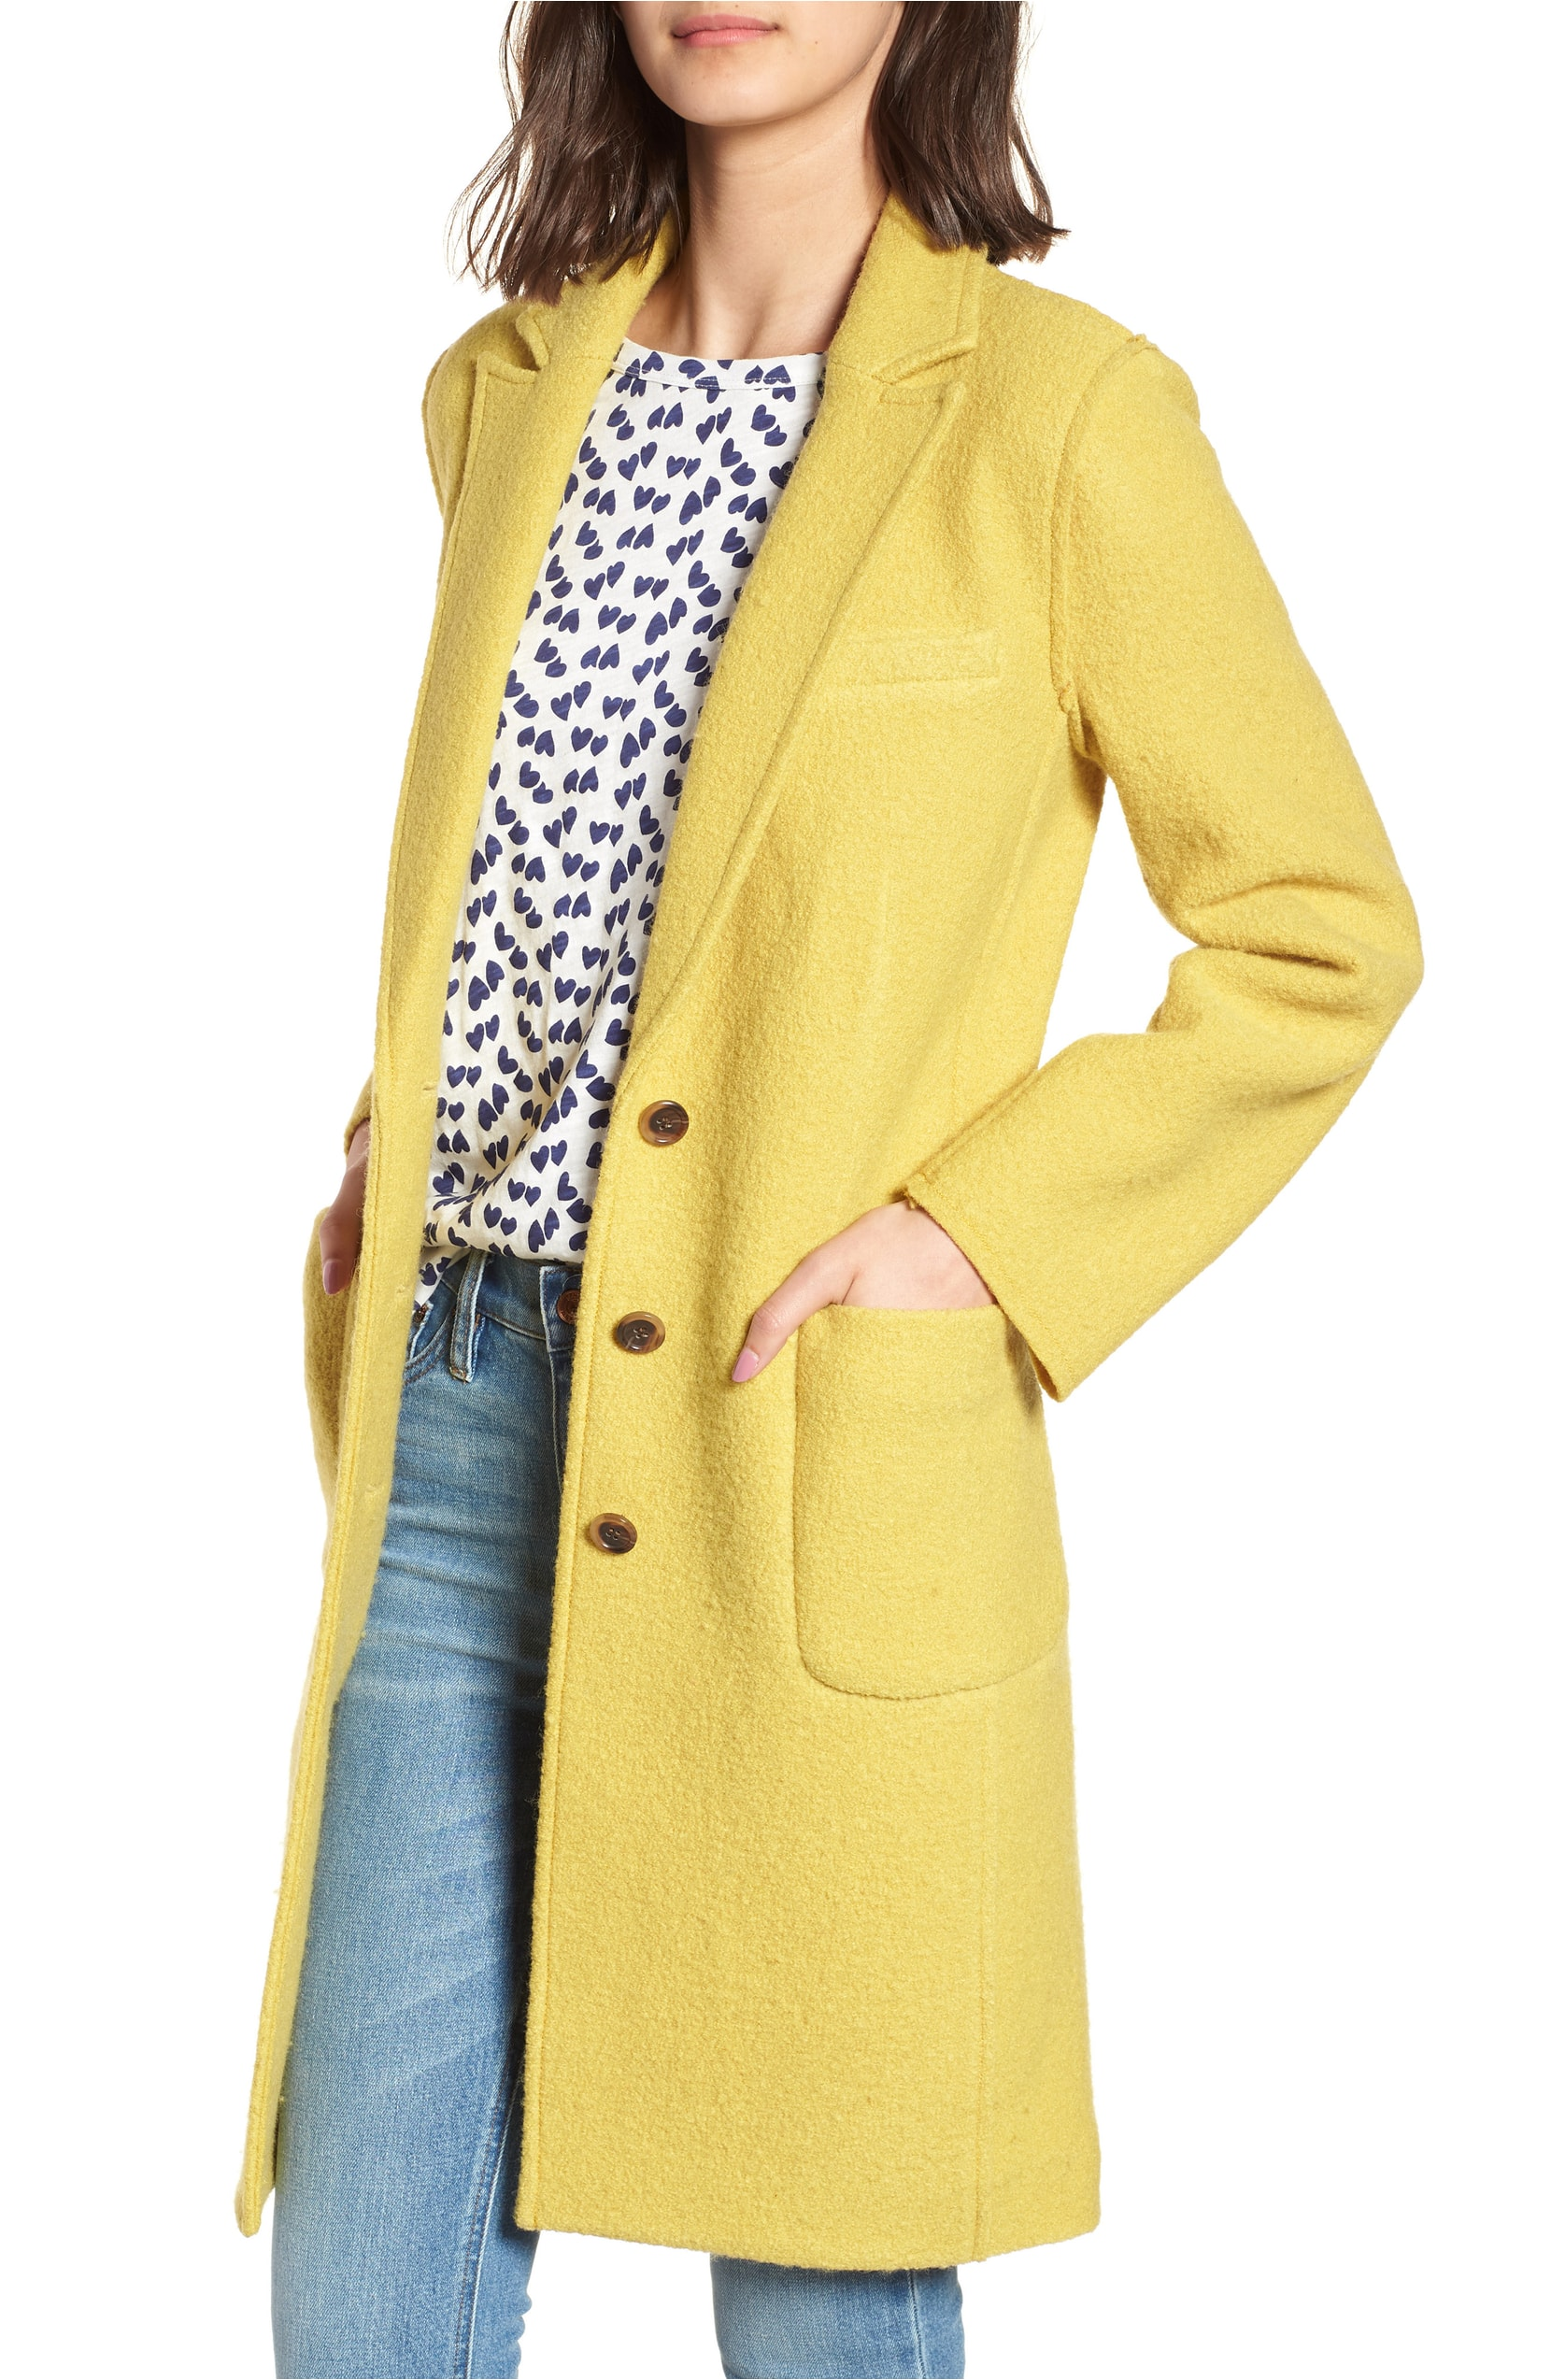 J. Crew Olga Boiled Wool Topcoat. Sale:$184.90 / After Sale:$278.00. (Image: Nordstrom){ }